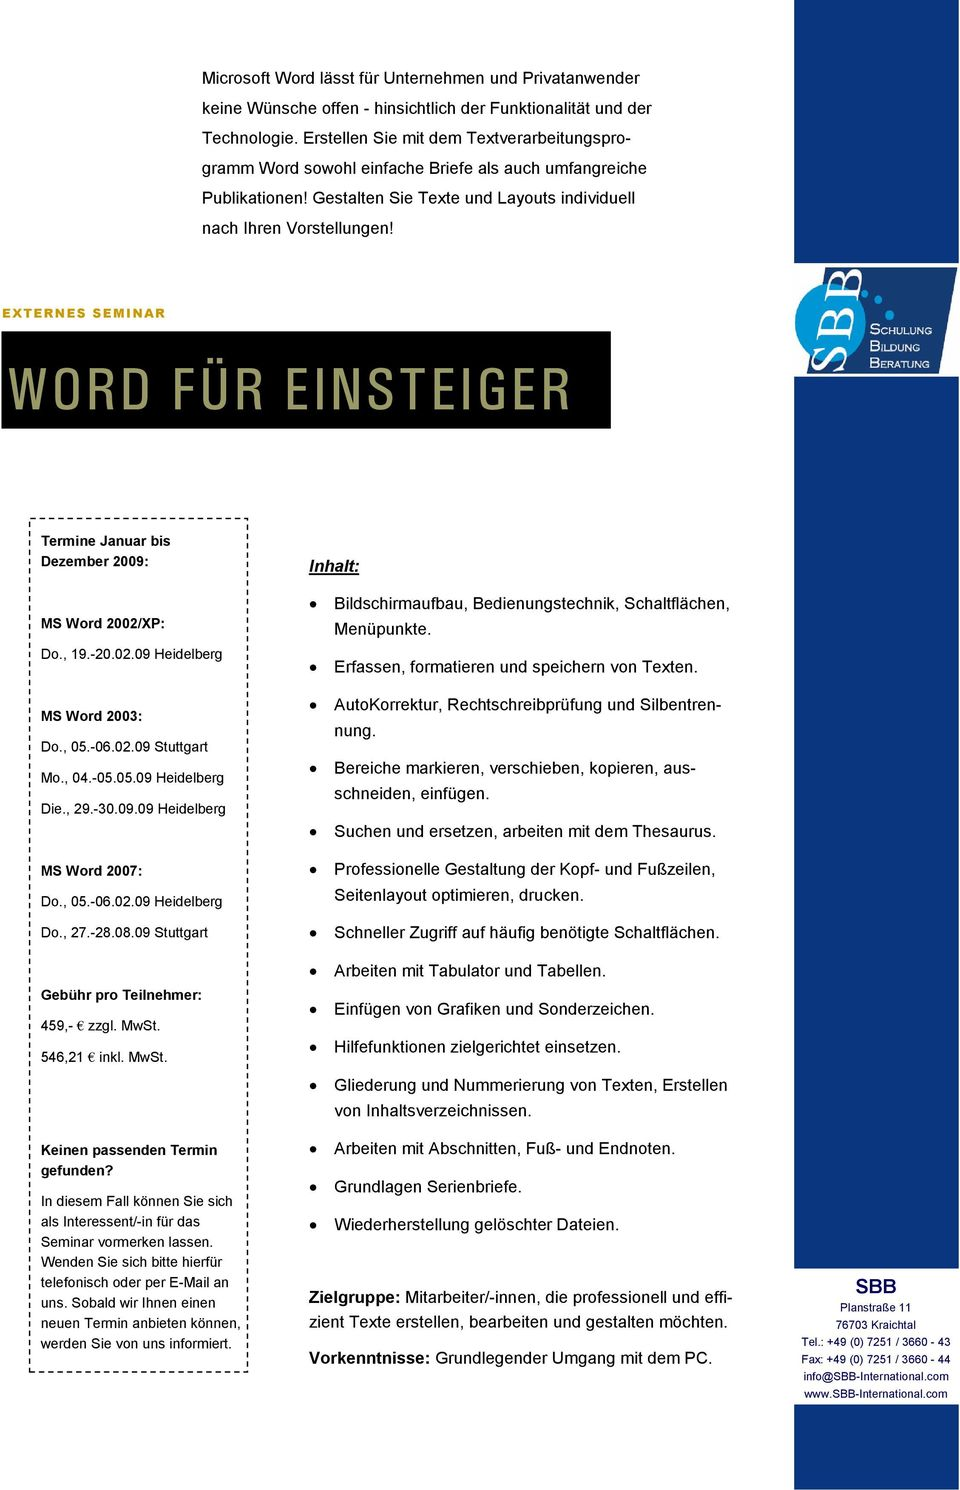 WORD FÜR EINSTEIGER MS Word 2002/XP: Do., 19.-20.02.09 Heidelberg MS Word 2003: Do., 05.-06.02.09 Stuttgart Mo., 04.-05.05.09 Heidelberg Die., 29.-30.09.09 Heidelberg MS Word 2007: Do., 05.-06.02.09 Heidelberg Do.